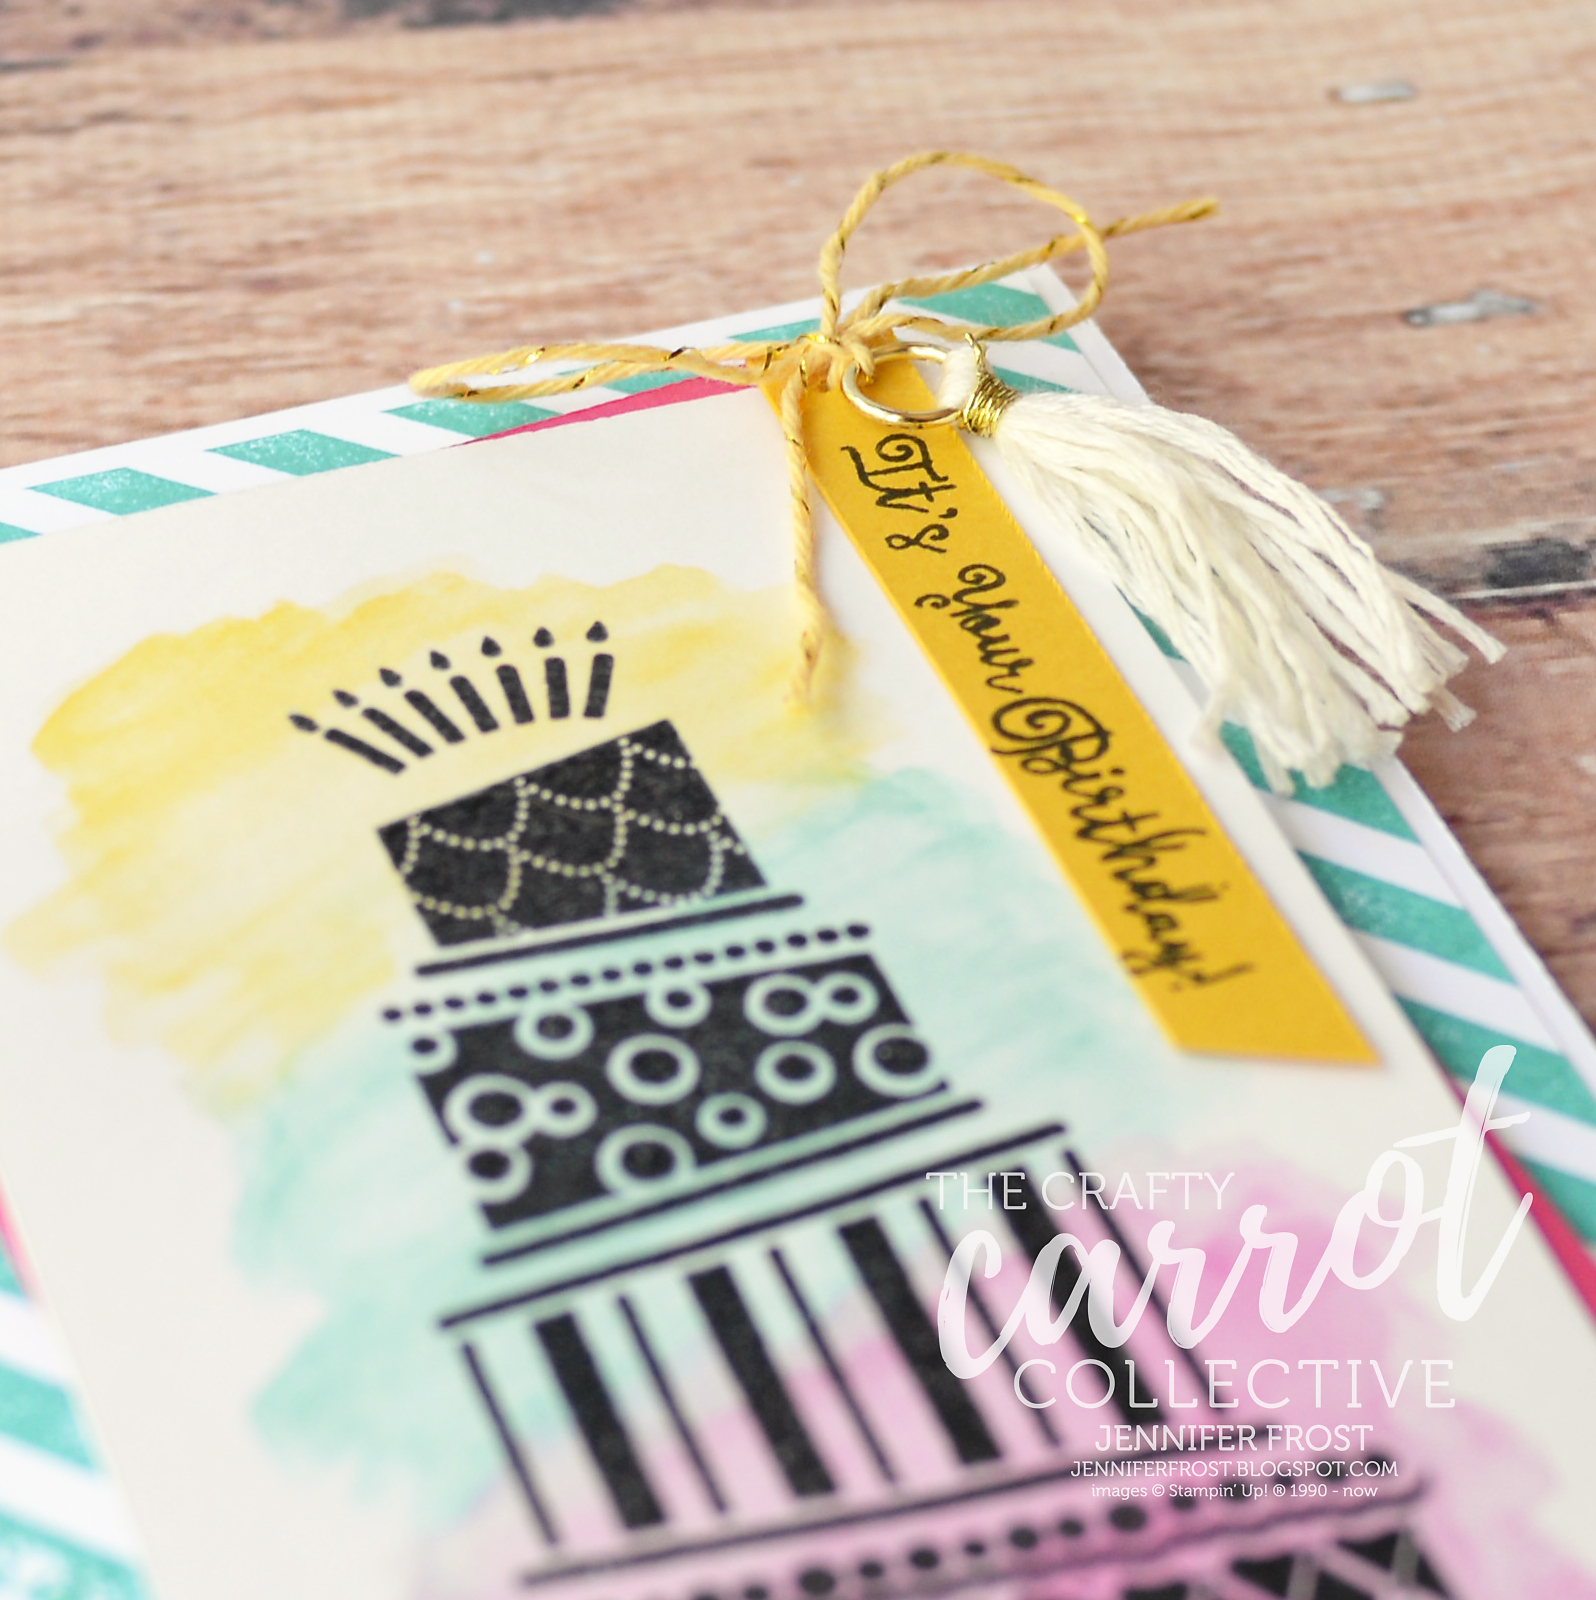 Cake Crazy The Crafty Carrot Collective Watercolor Pencils Diagonal Stripe Background Stampin